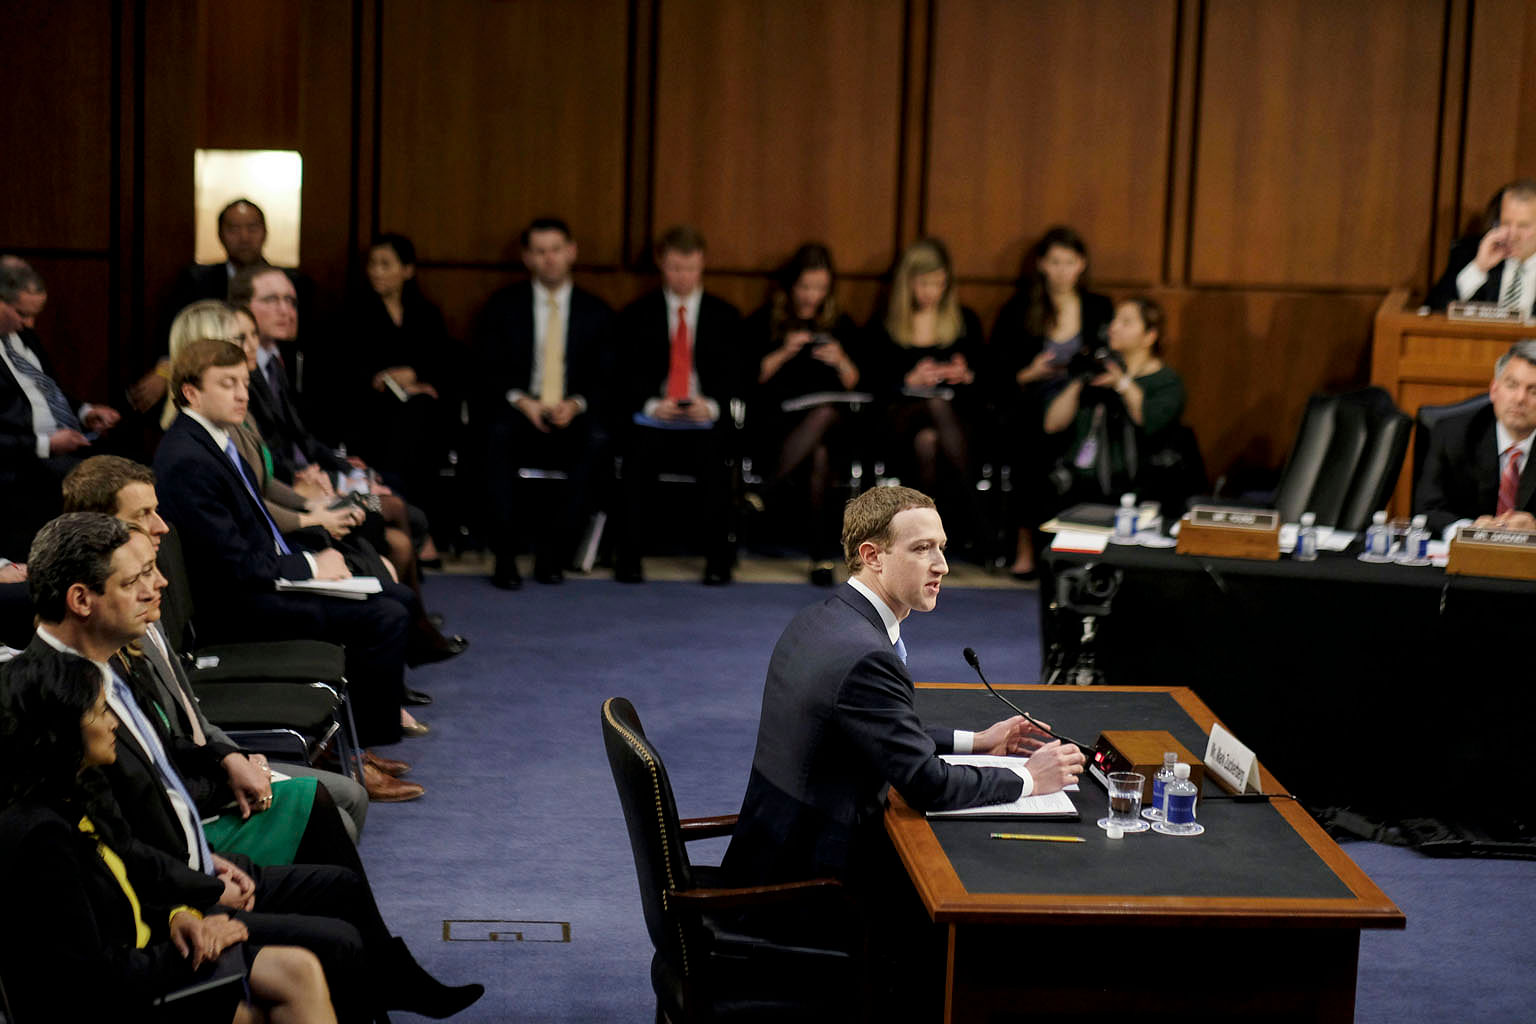 Facebook CEO Mark Zuckerberg at a Senate hearing in Washington this week. Privacy advocates want US lawmakers and regulators to have a pointed discussion about the stockpiling of personal data at the core of the giant social media company's business.